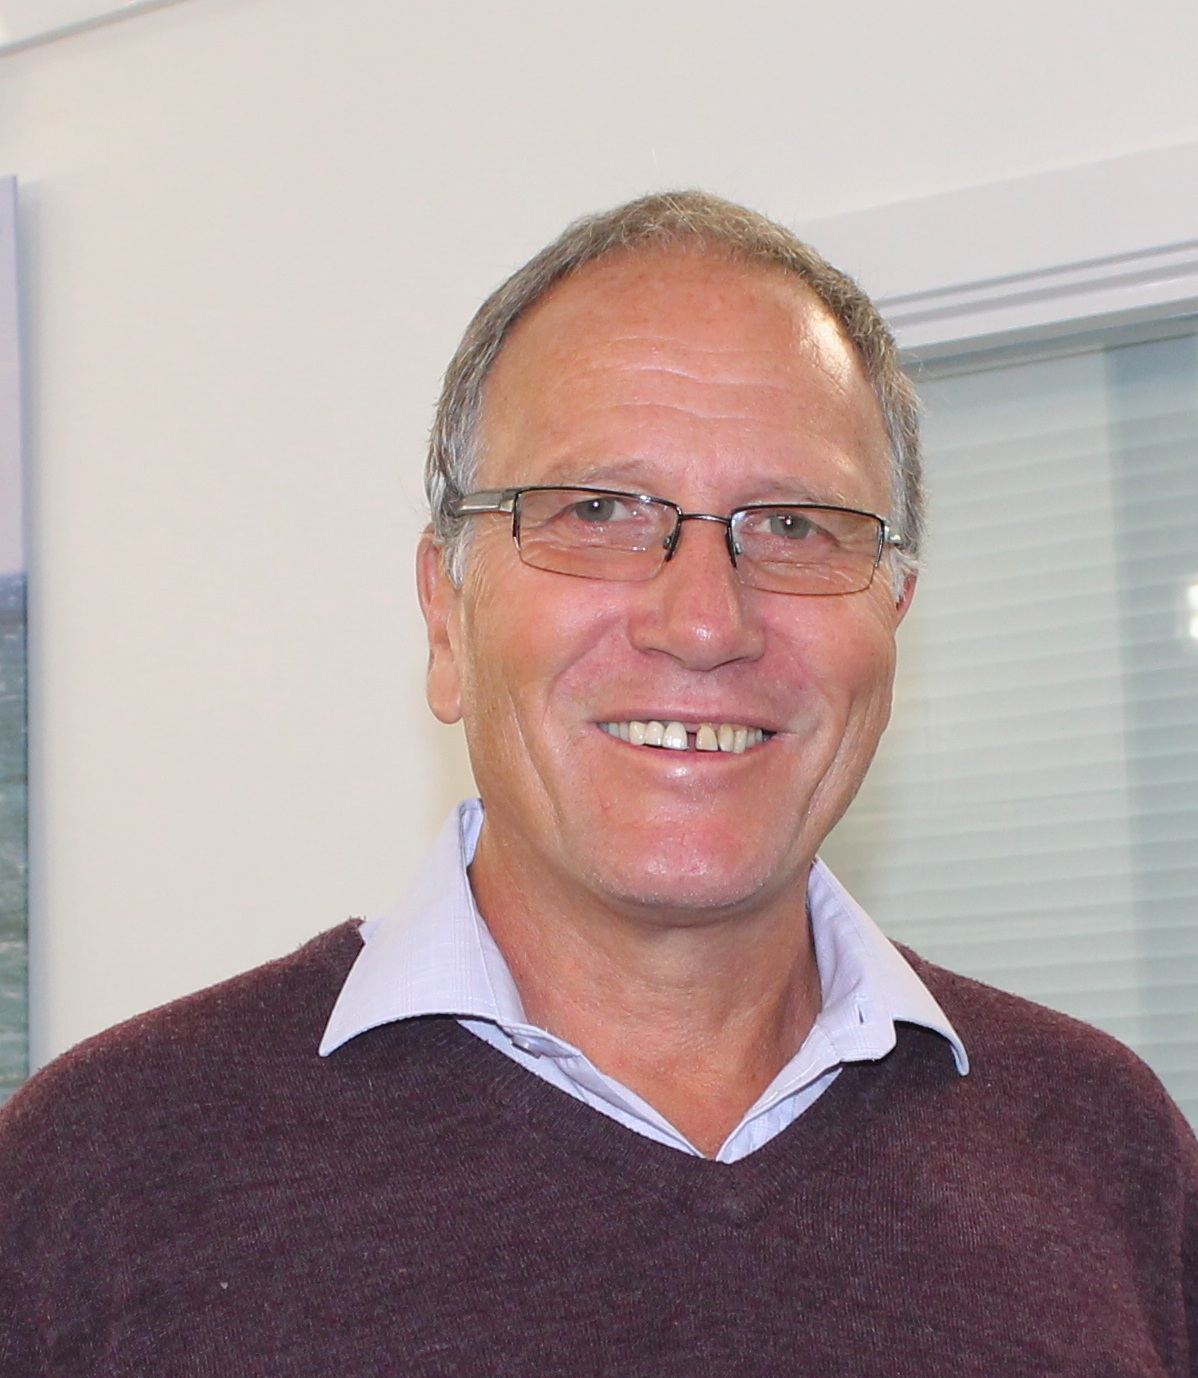 Ted was elected to the Council in 2014 and unanimously voted as Chairman in May 2017. However, he was defeated by Cllr Robert Francis after a year in the role.